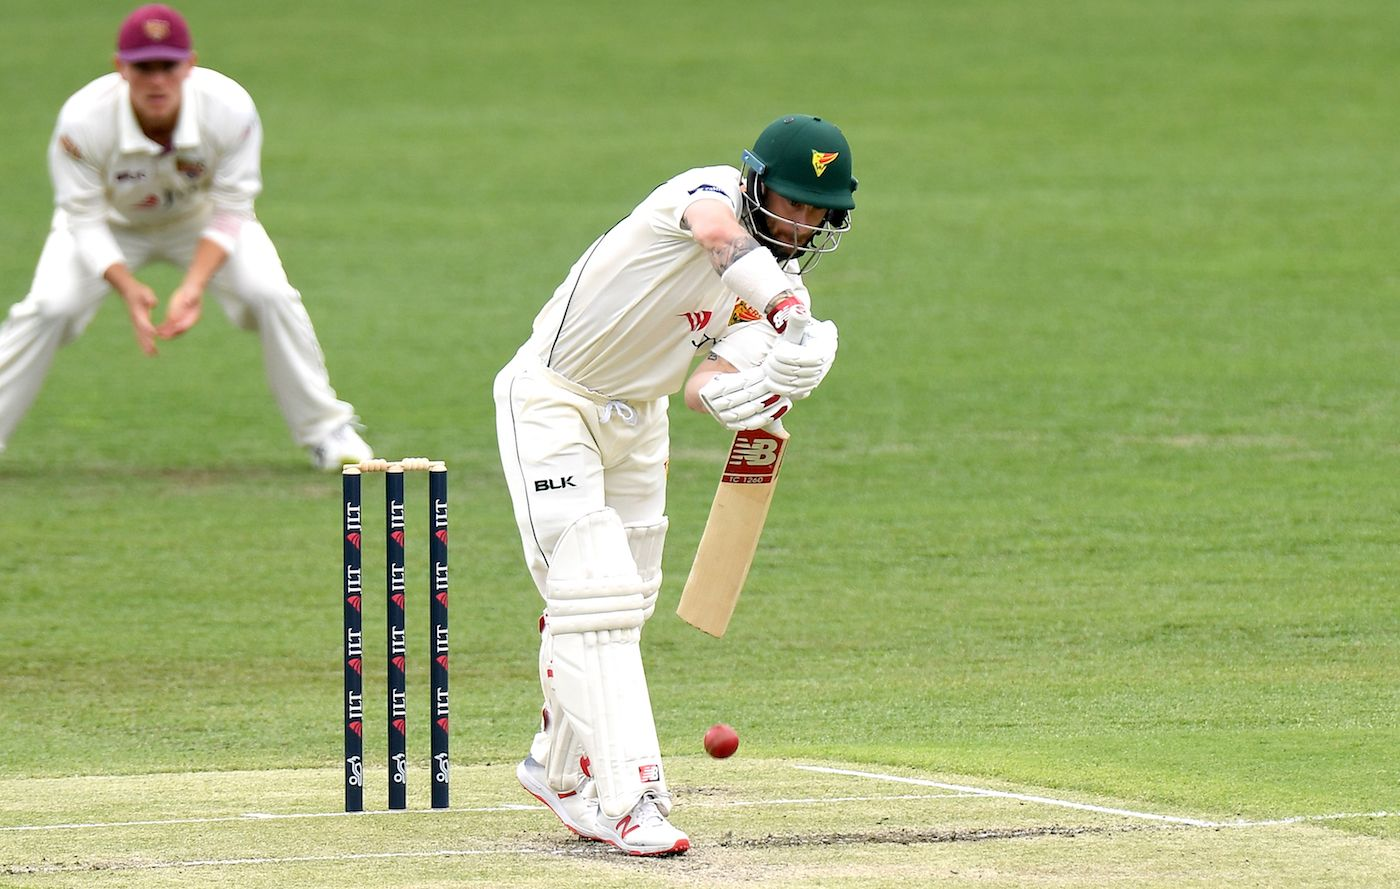 Matthew Wade bats at No. 5 or 6 at domestic circuit | Getty Images